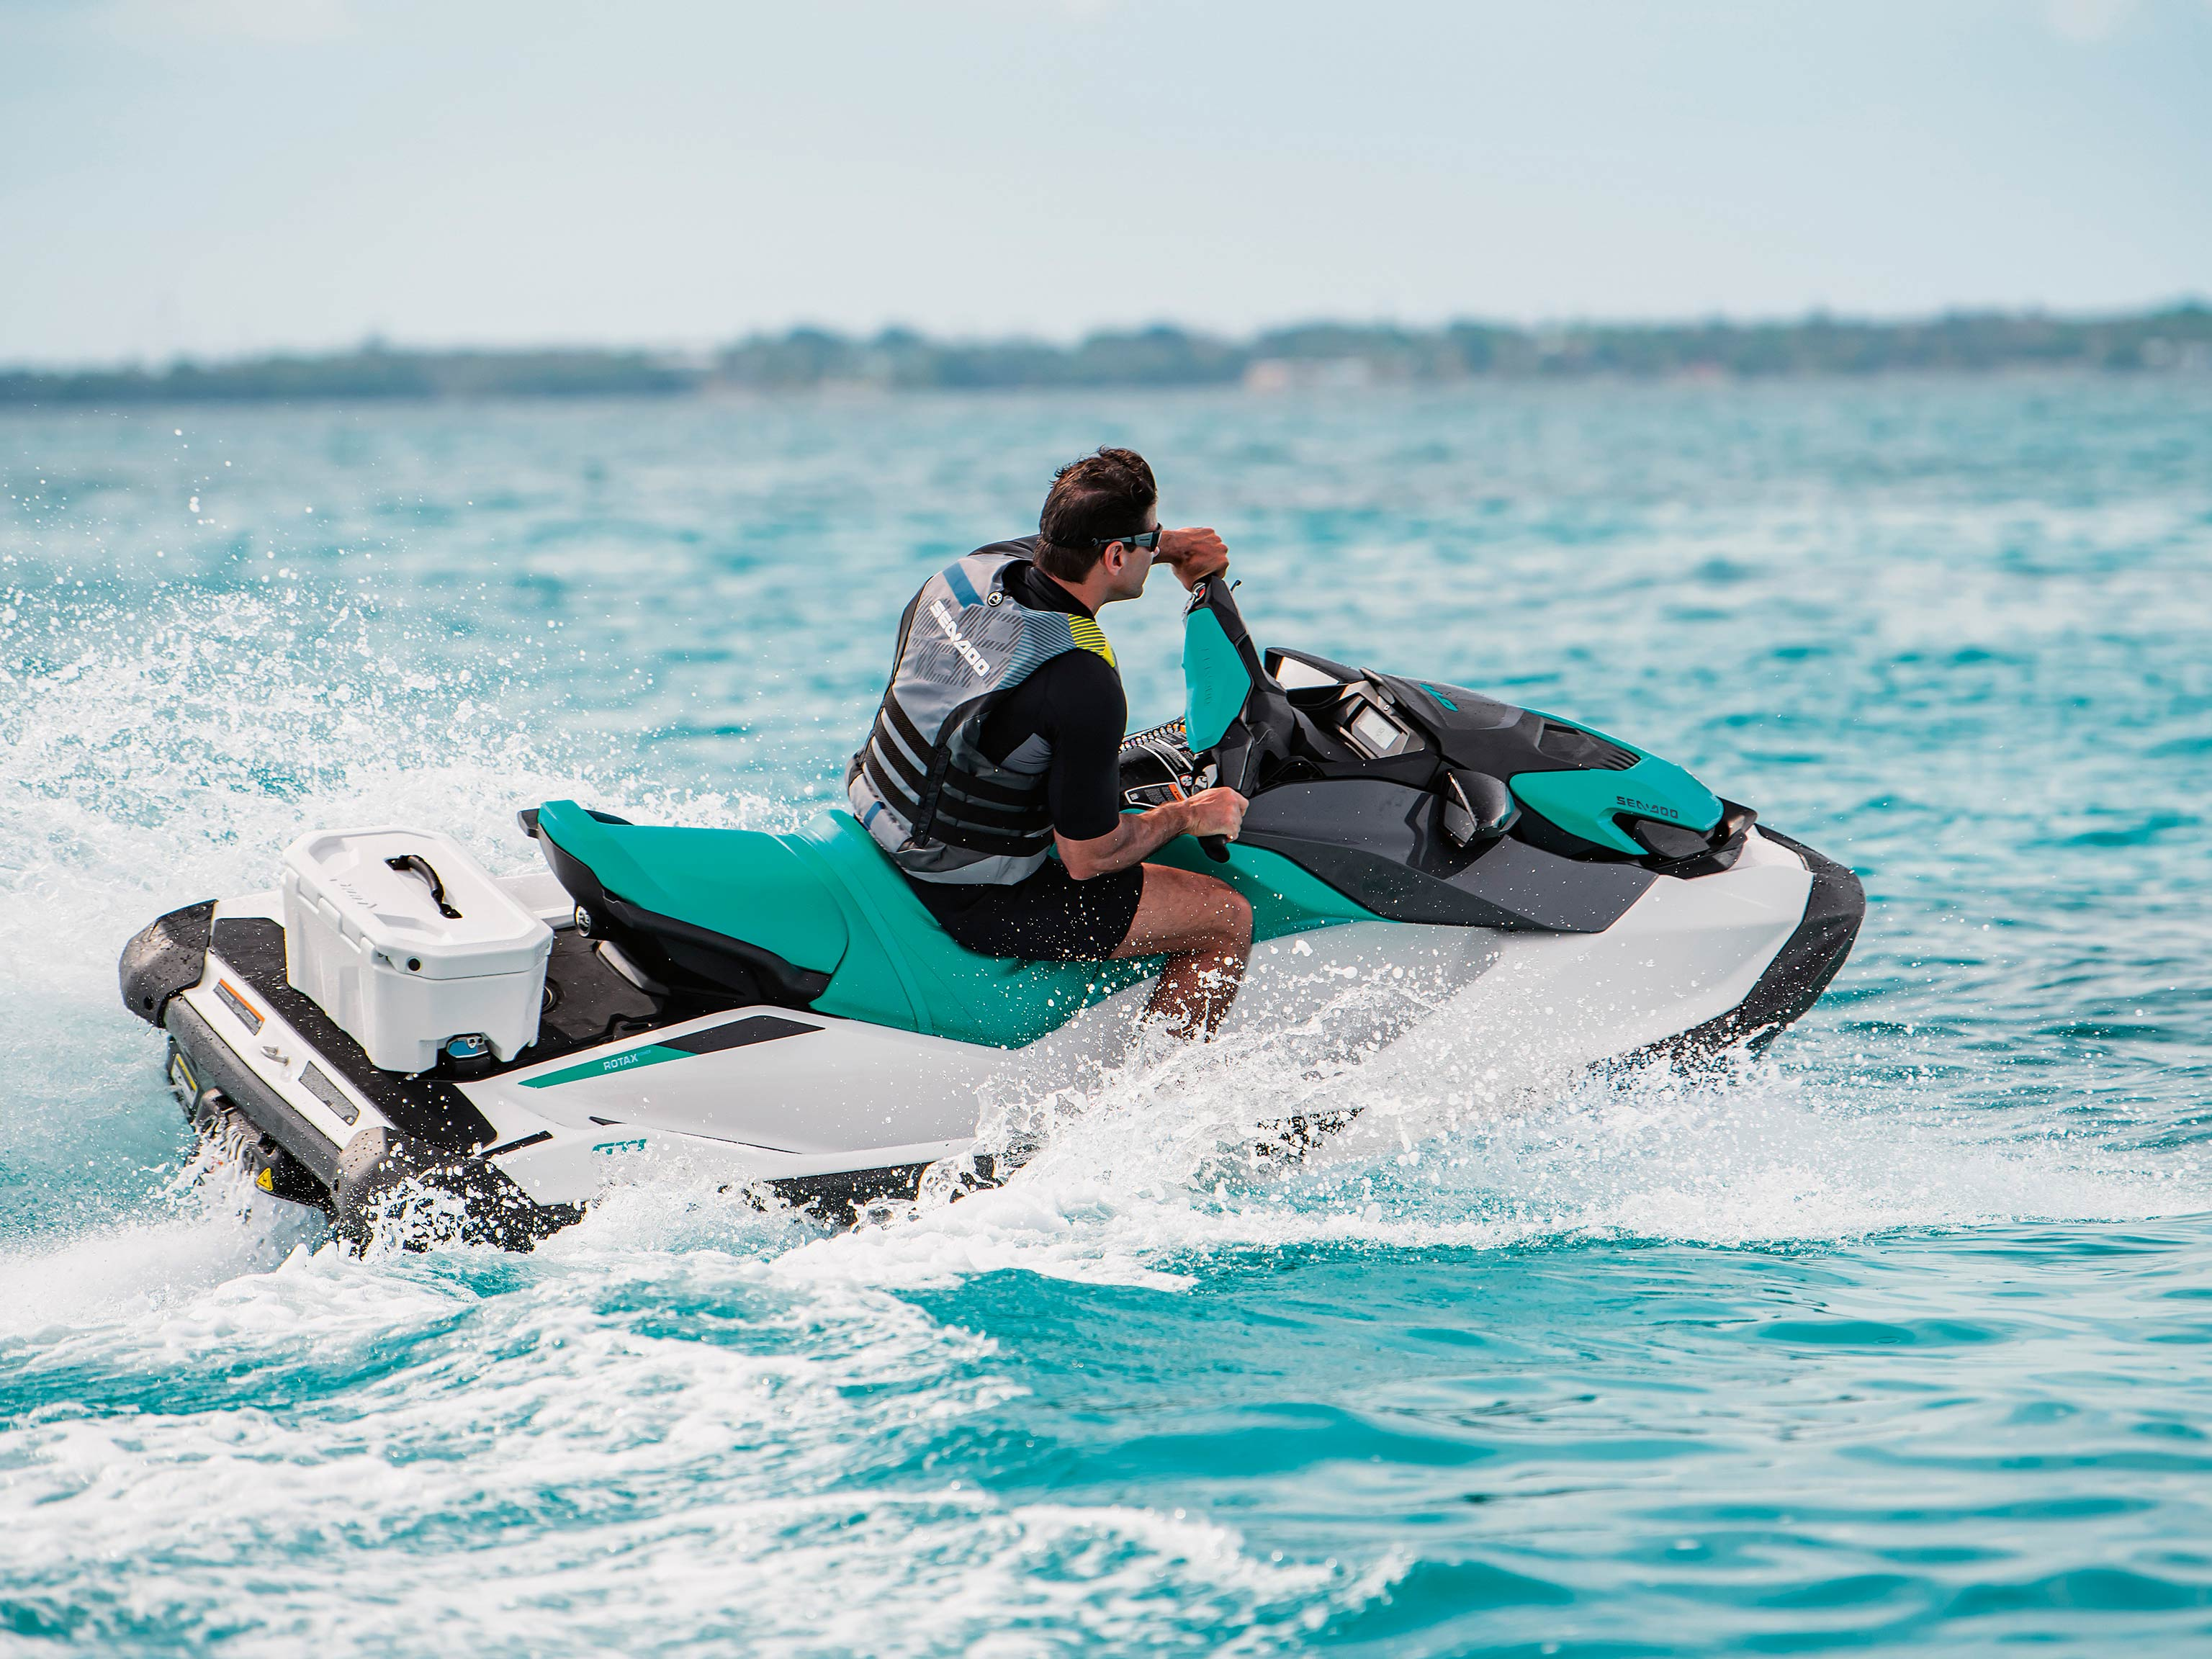 Man riding a Sea-Doo GTI